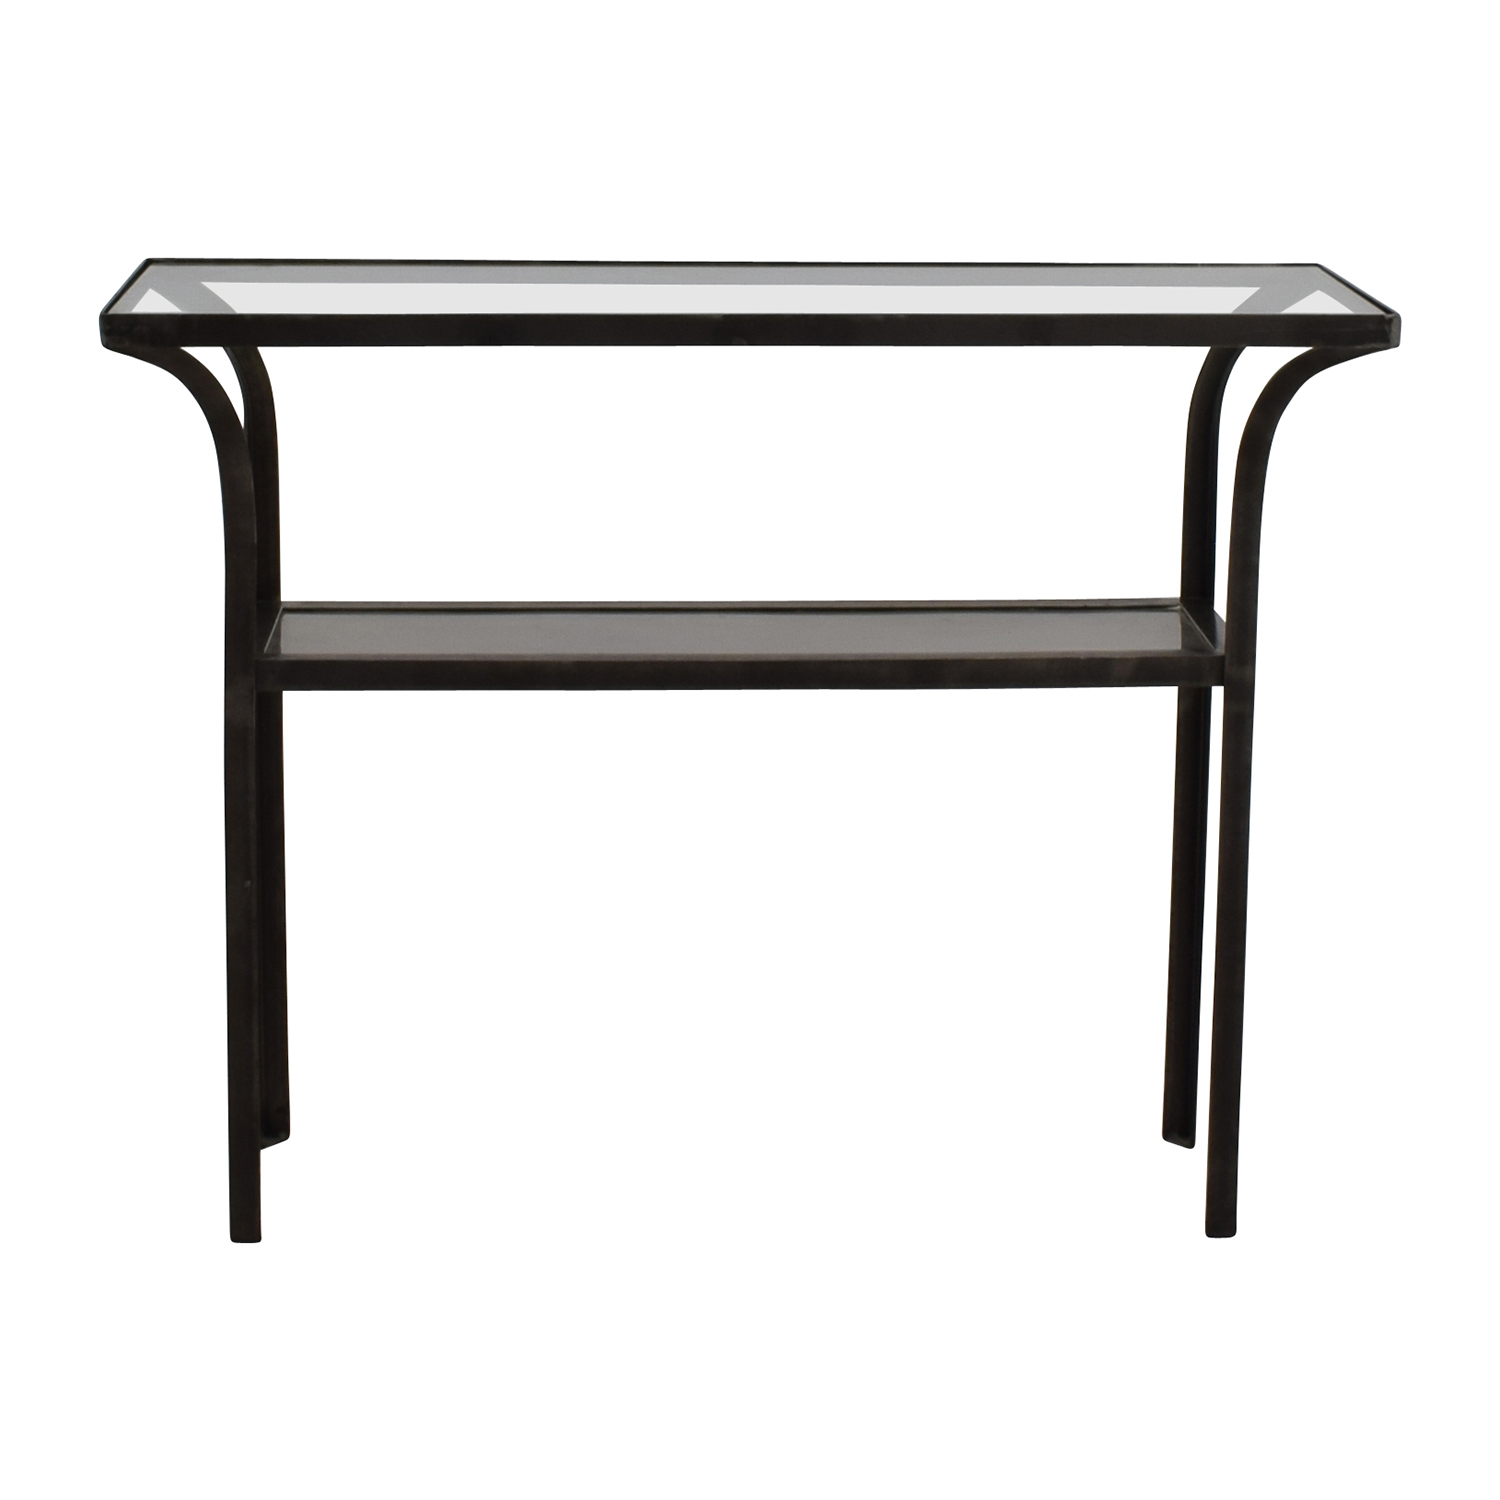 90 off crate and barrel crate barrel black glass console crate and barrel crate barrel black glass console table black geotapseo Choice Image